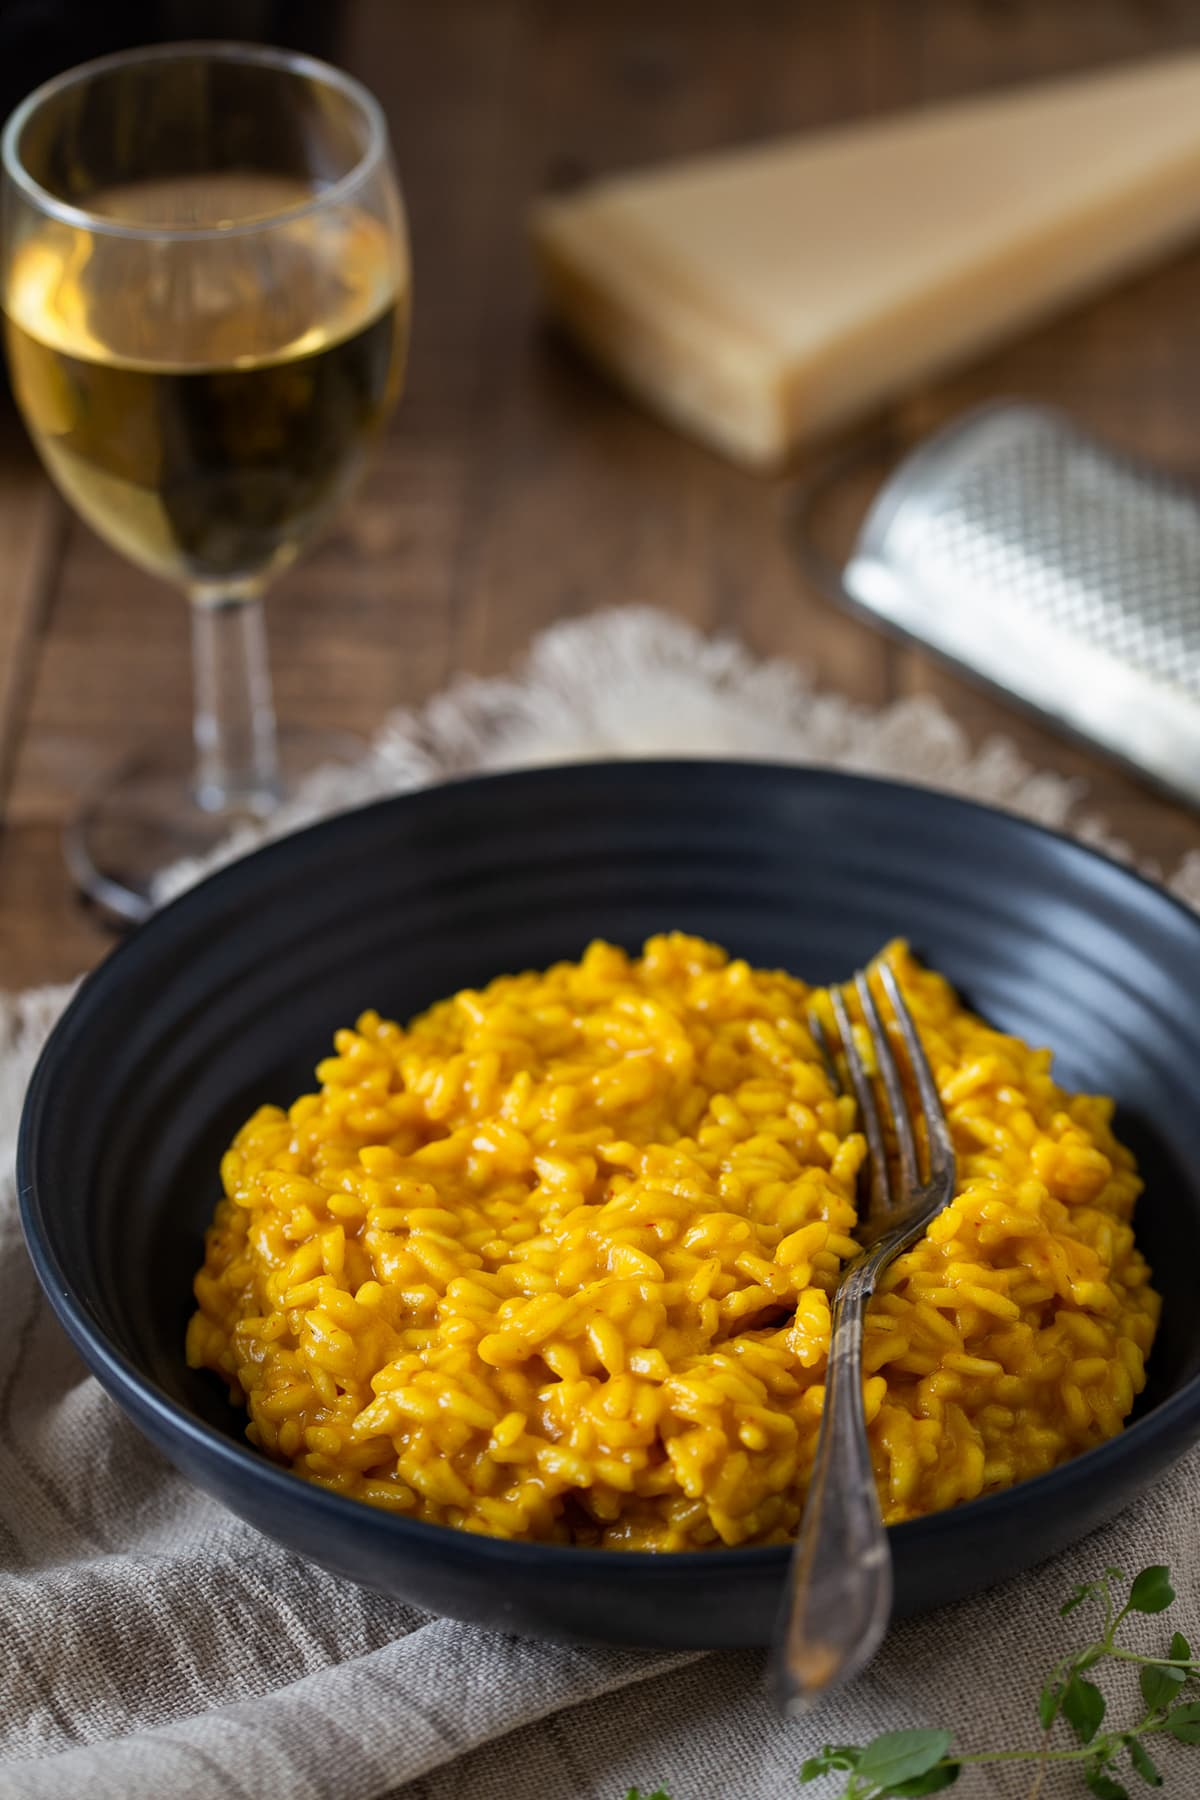 A portion of saffron risotto served with a glass of white wine.